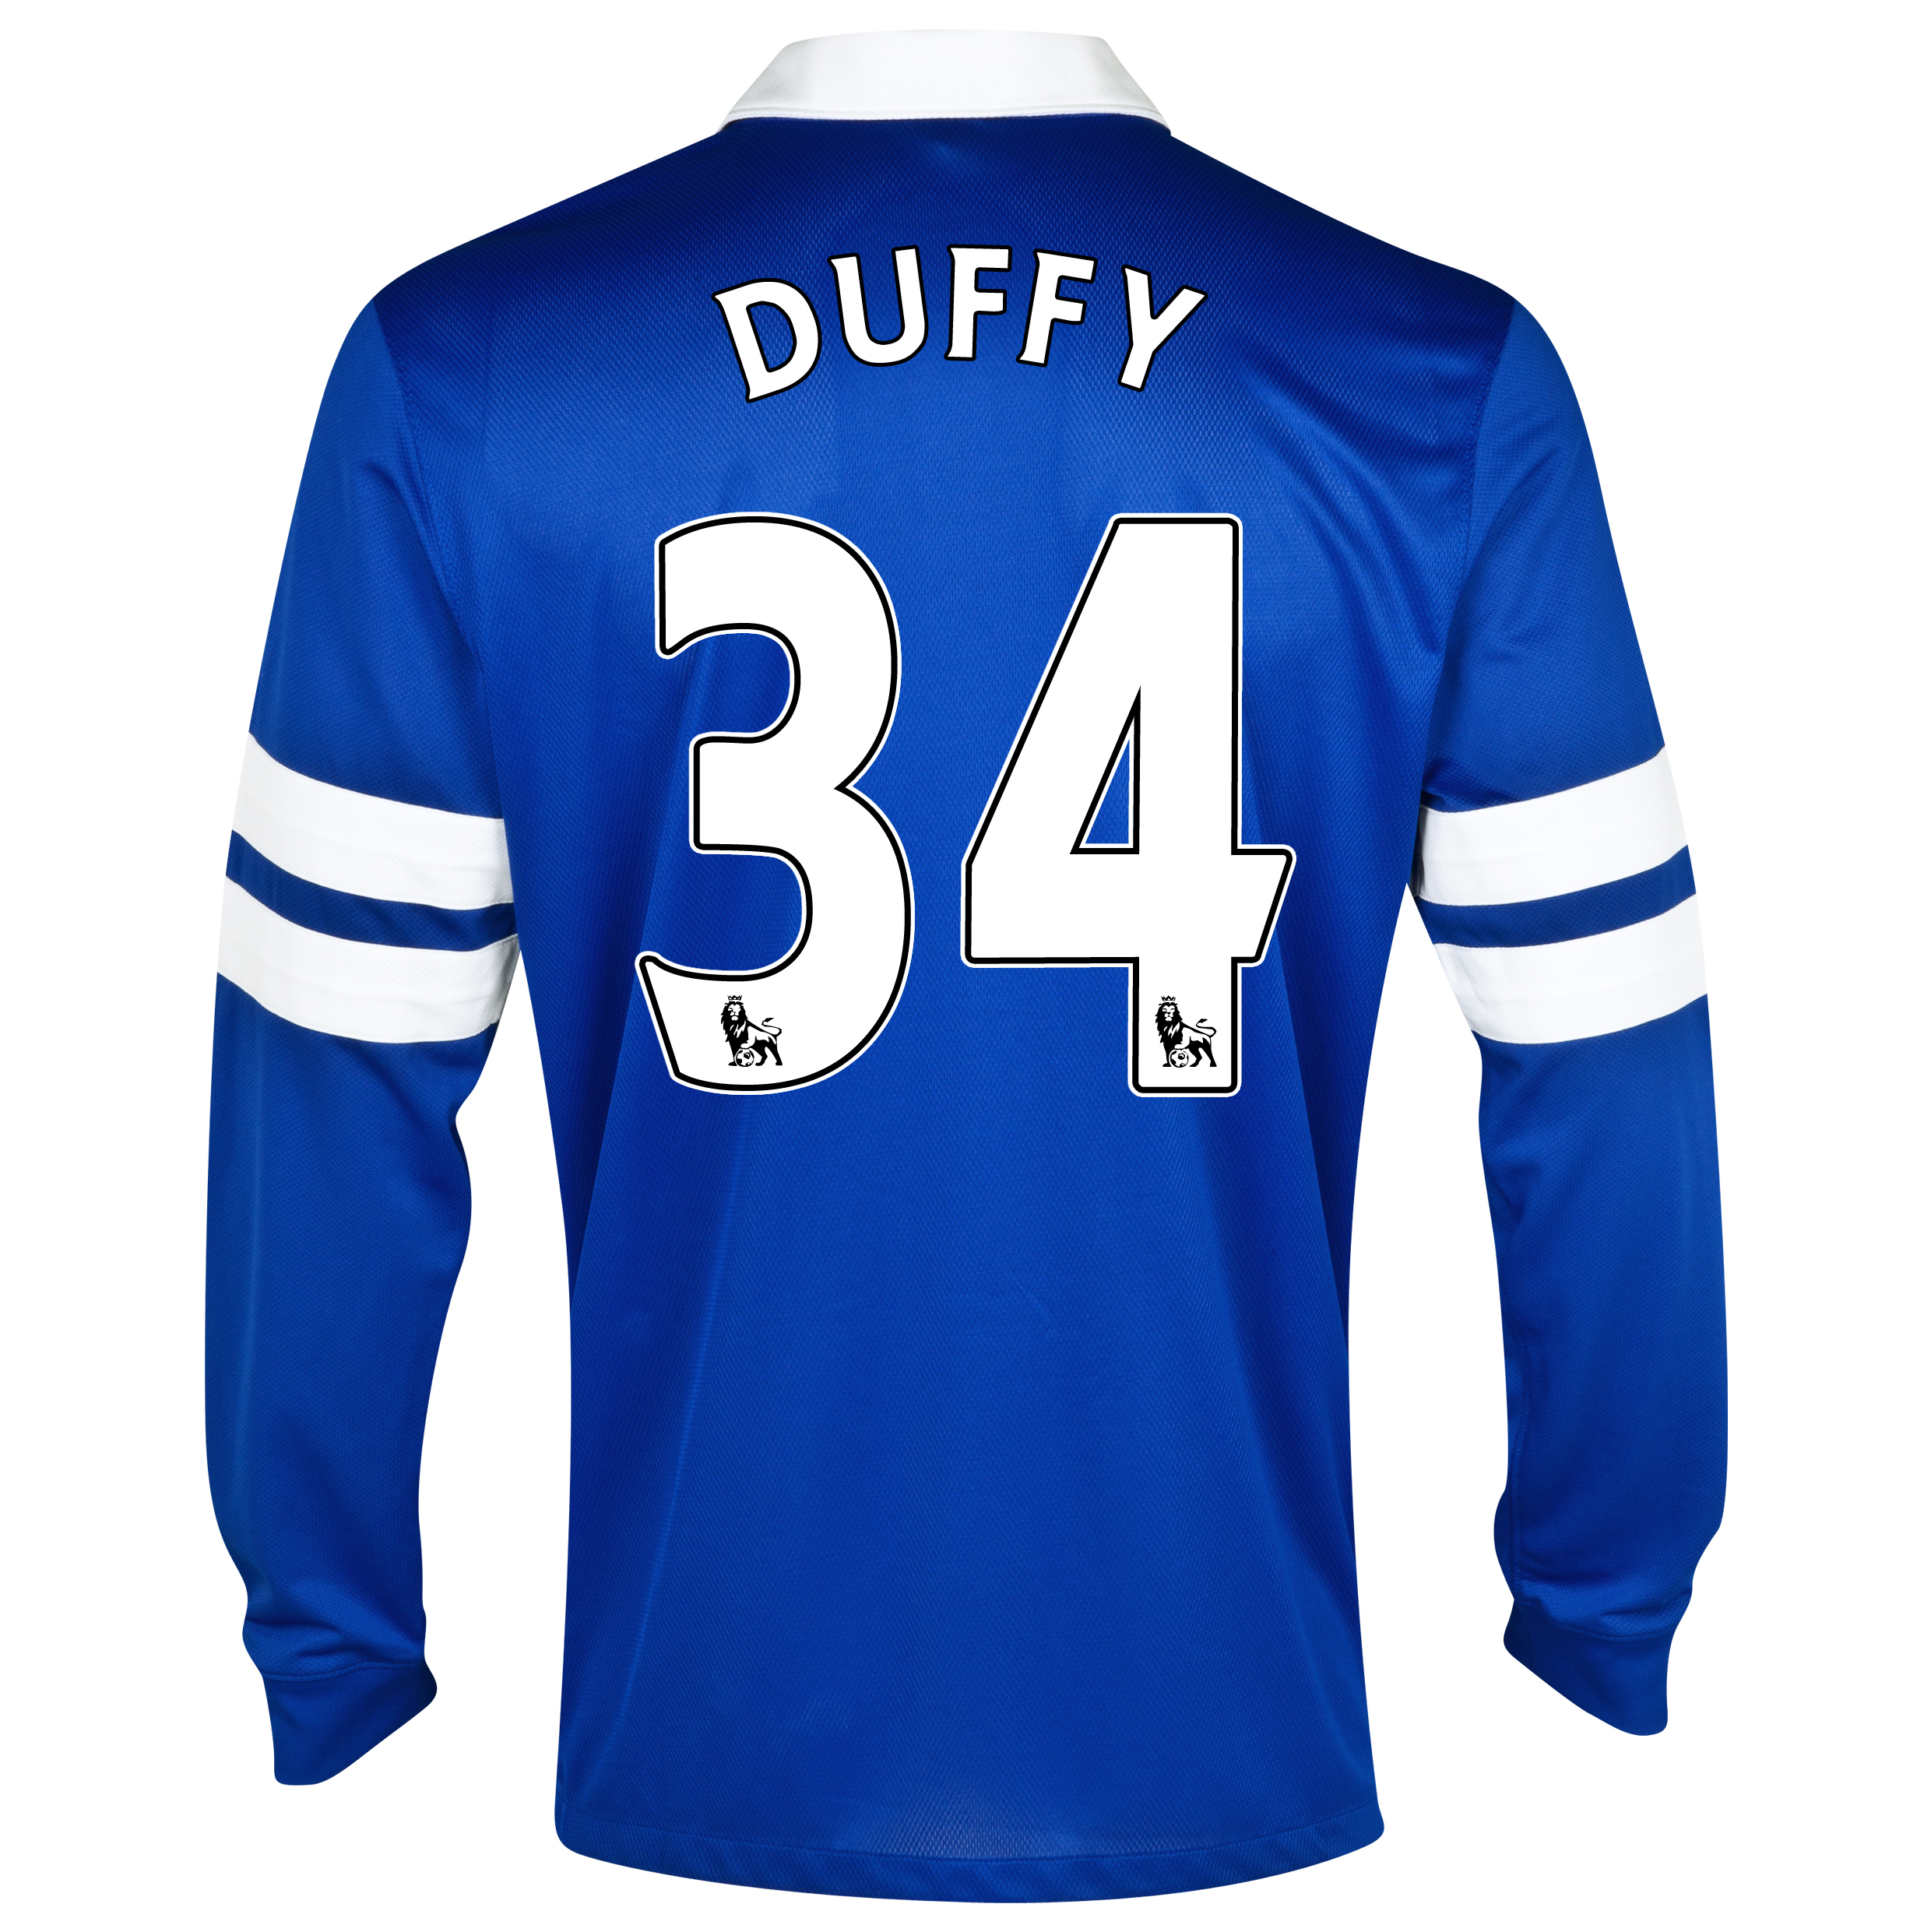 Everton Home Shirt 2013/14 - Long Sleeved Blue with Duffy 34 printing